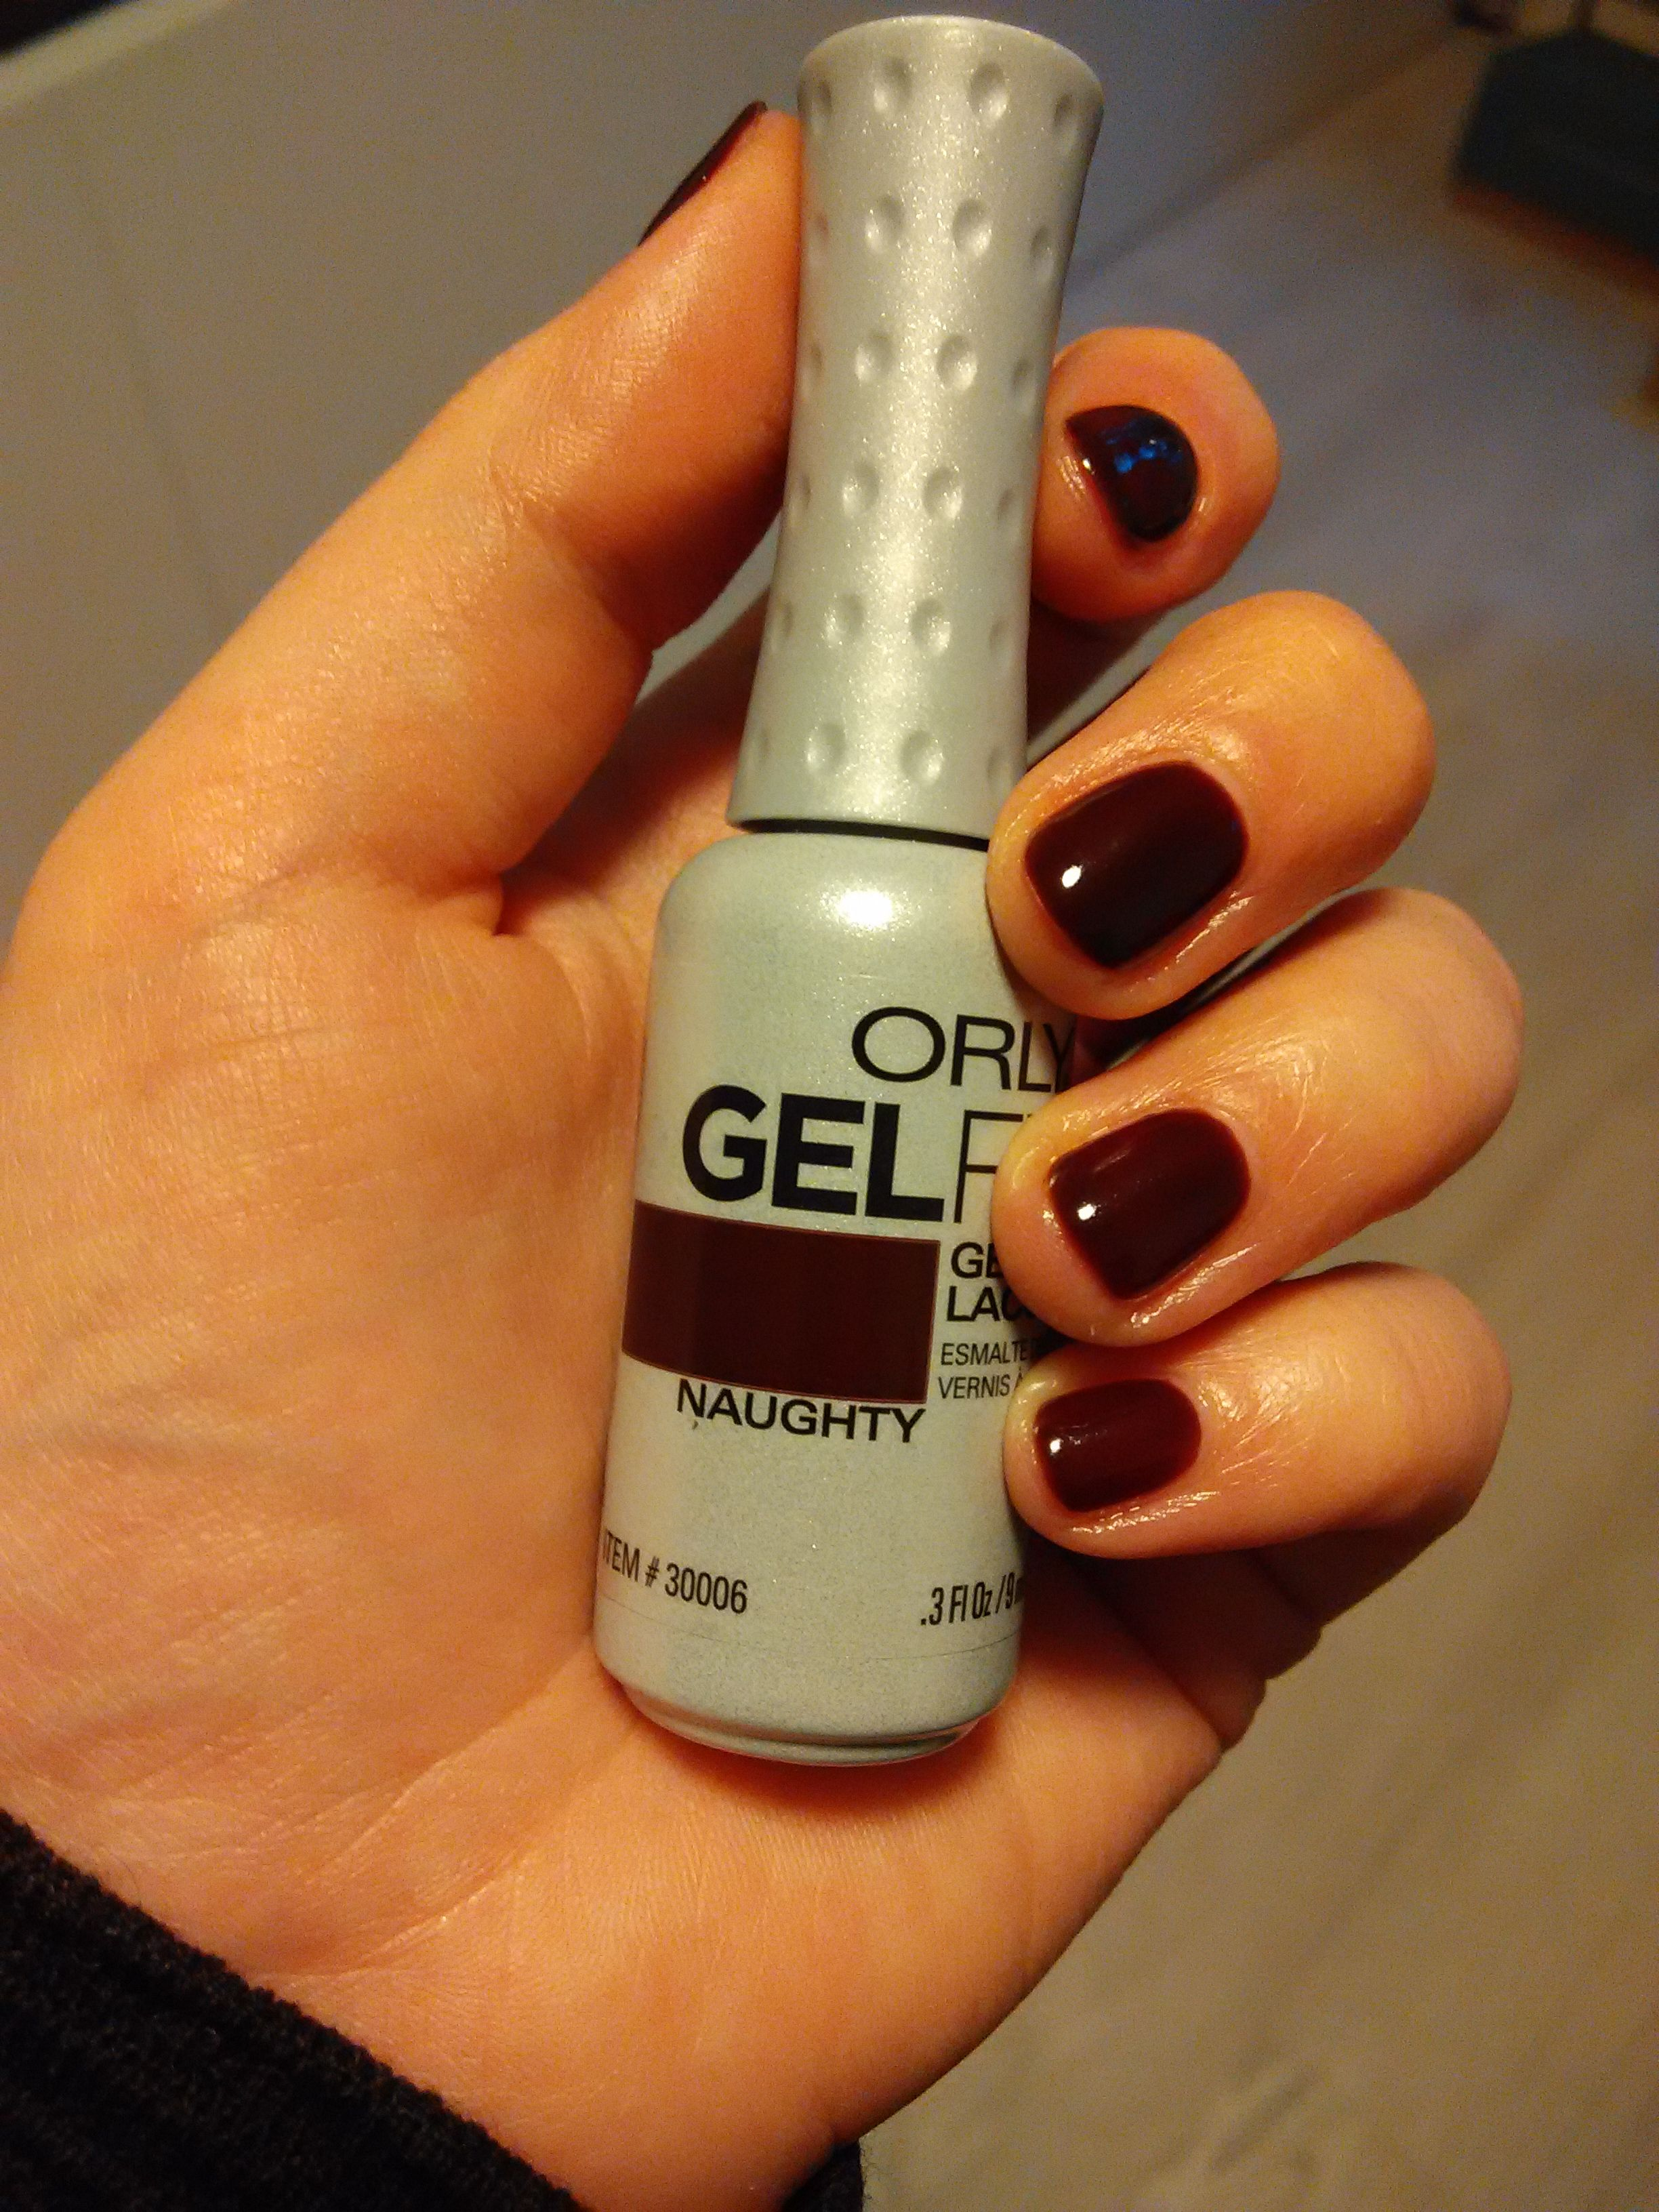 Orly Gelfx Naughty Two Layers Of The Color